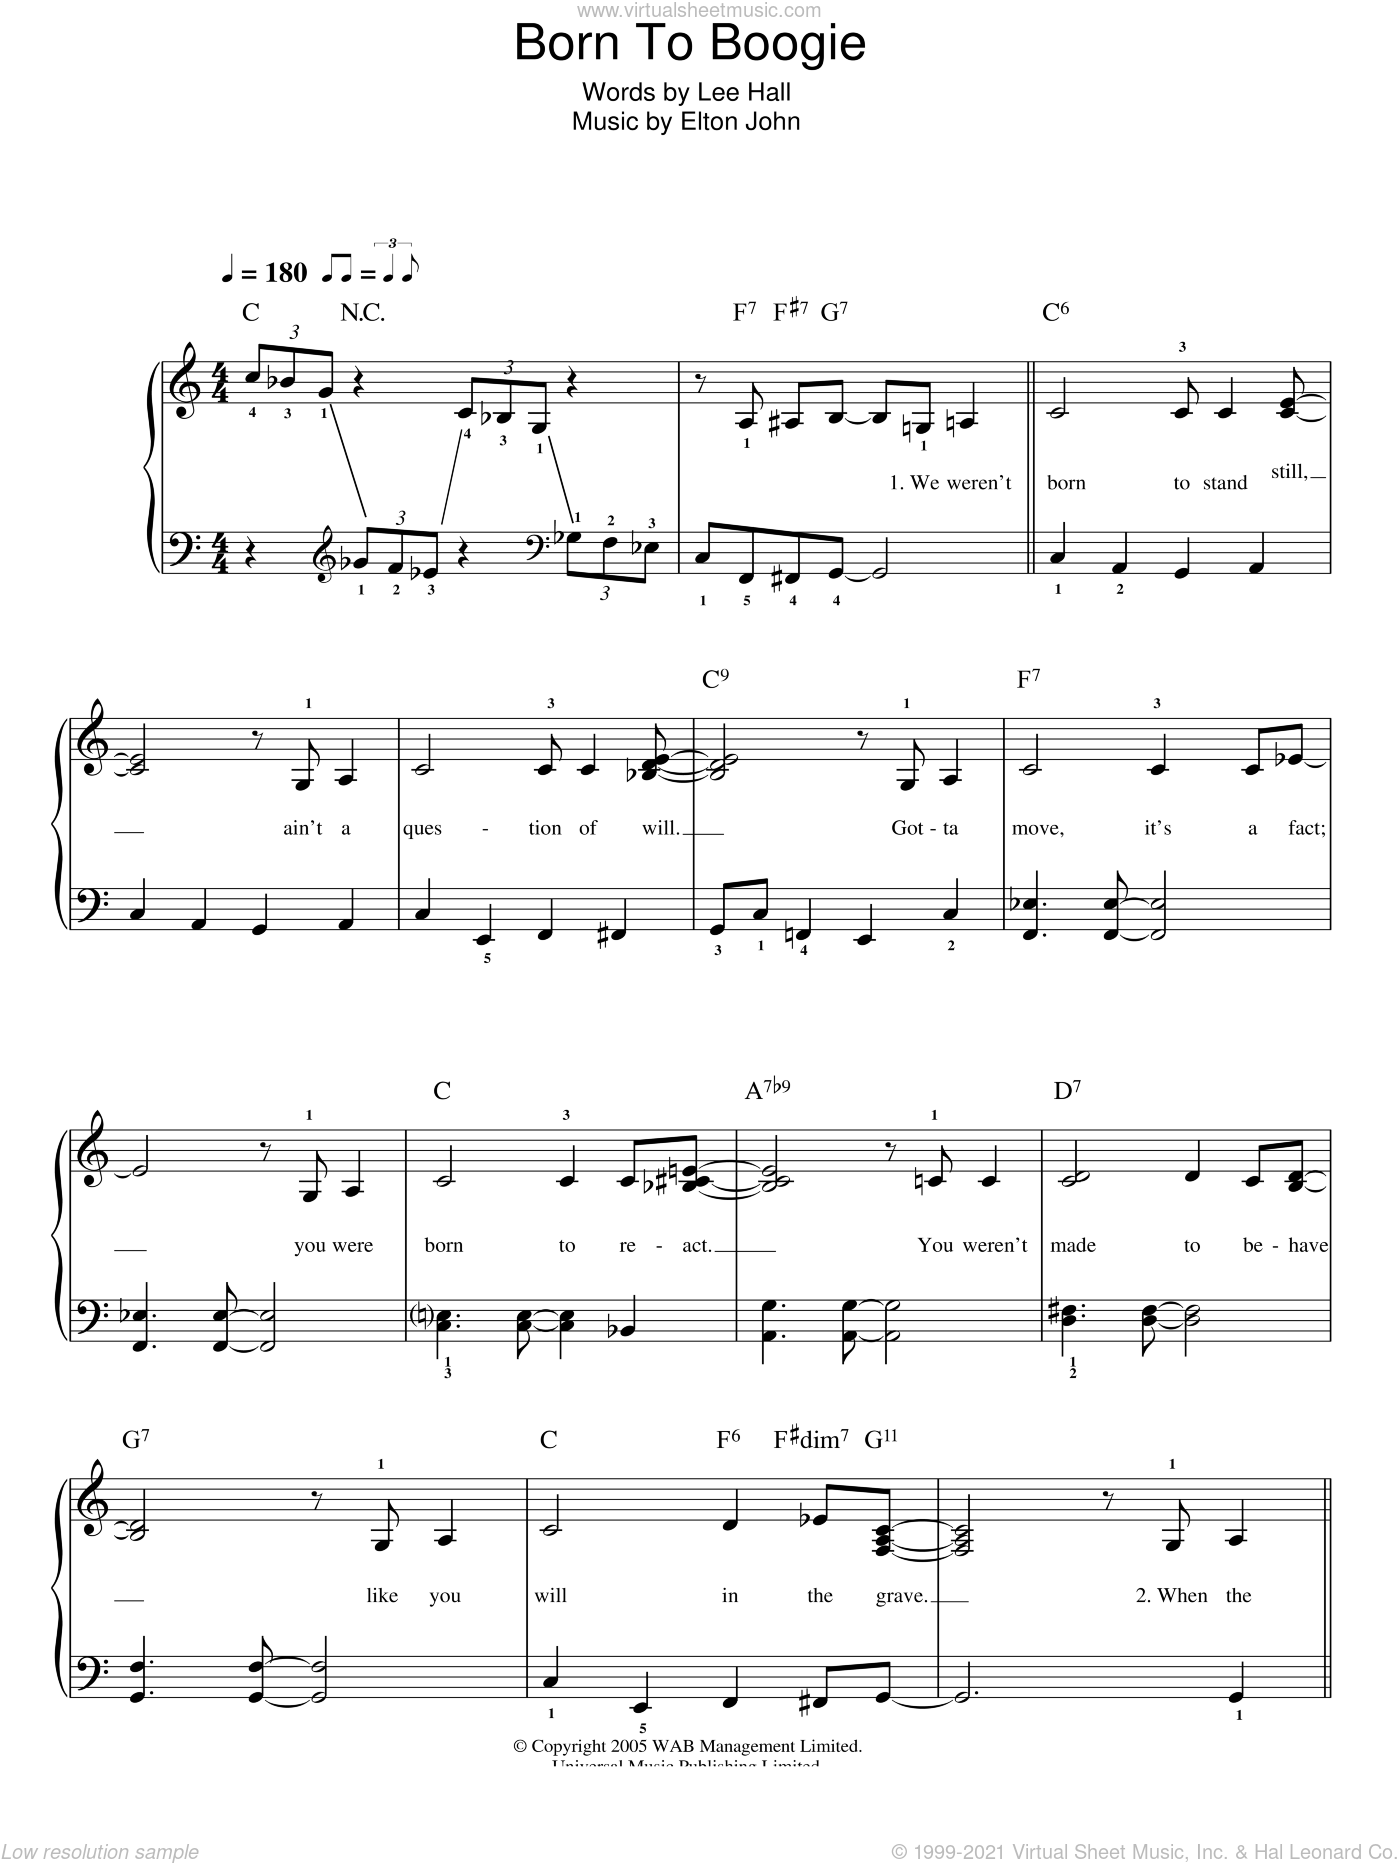 Born To Boogie sheet music for piano solo by Elton John, Billy Elliot (Musical) and Lee Hall, easy skill level